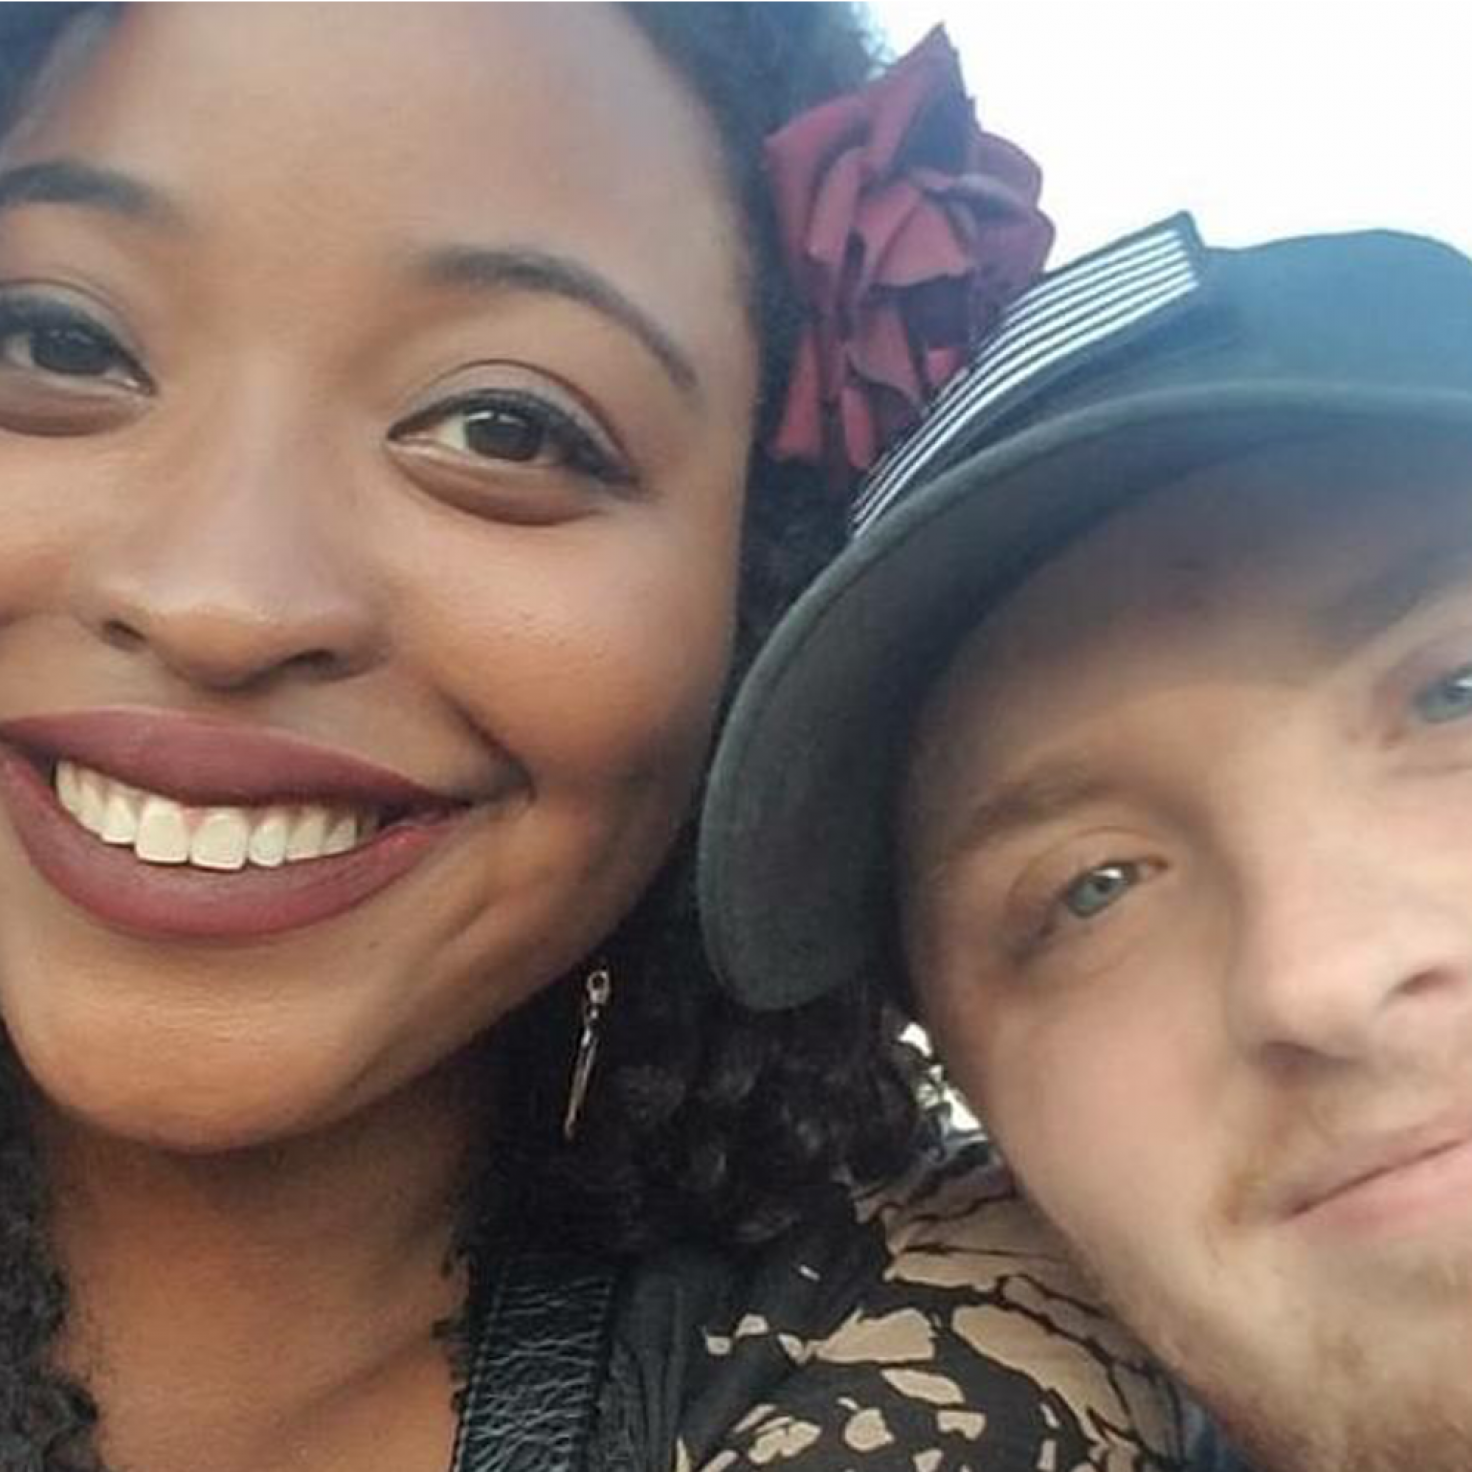 Austin Man Fatally Shot At BLM Protest While Protecting Fiancée